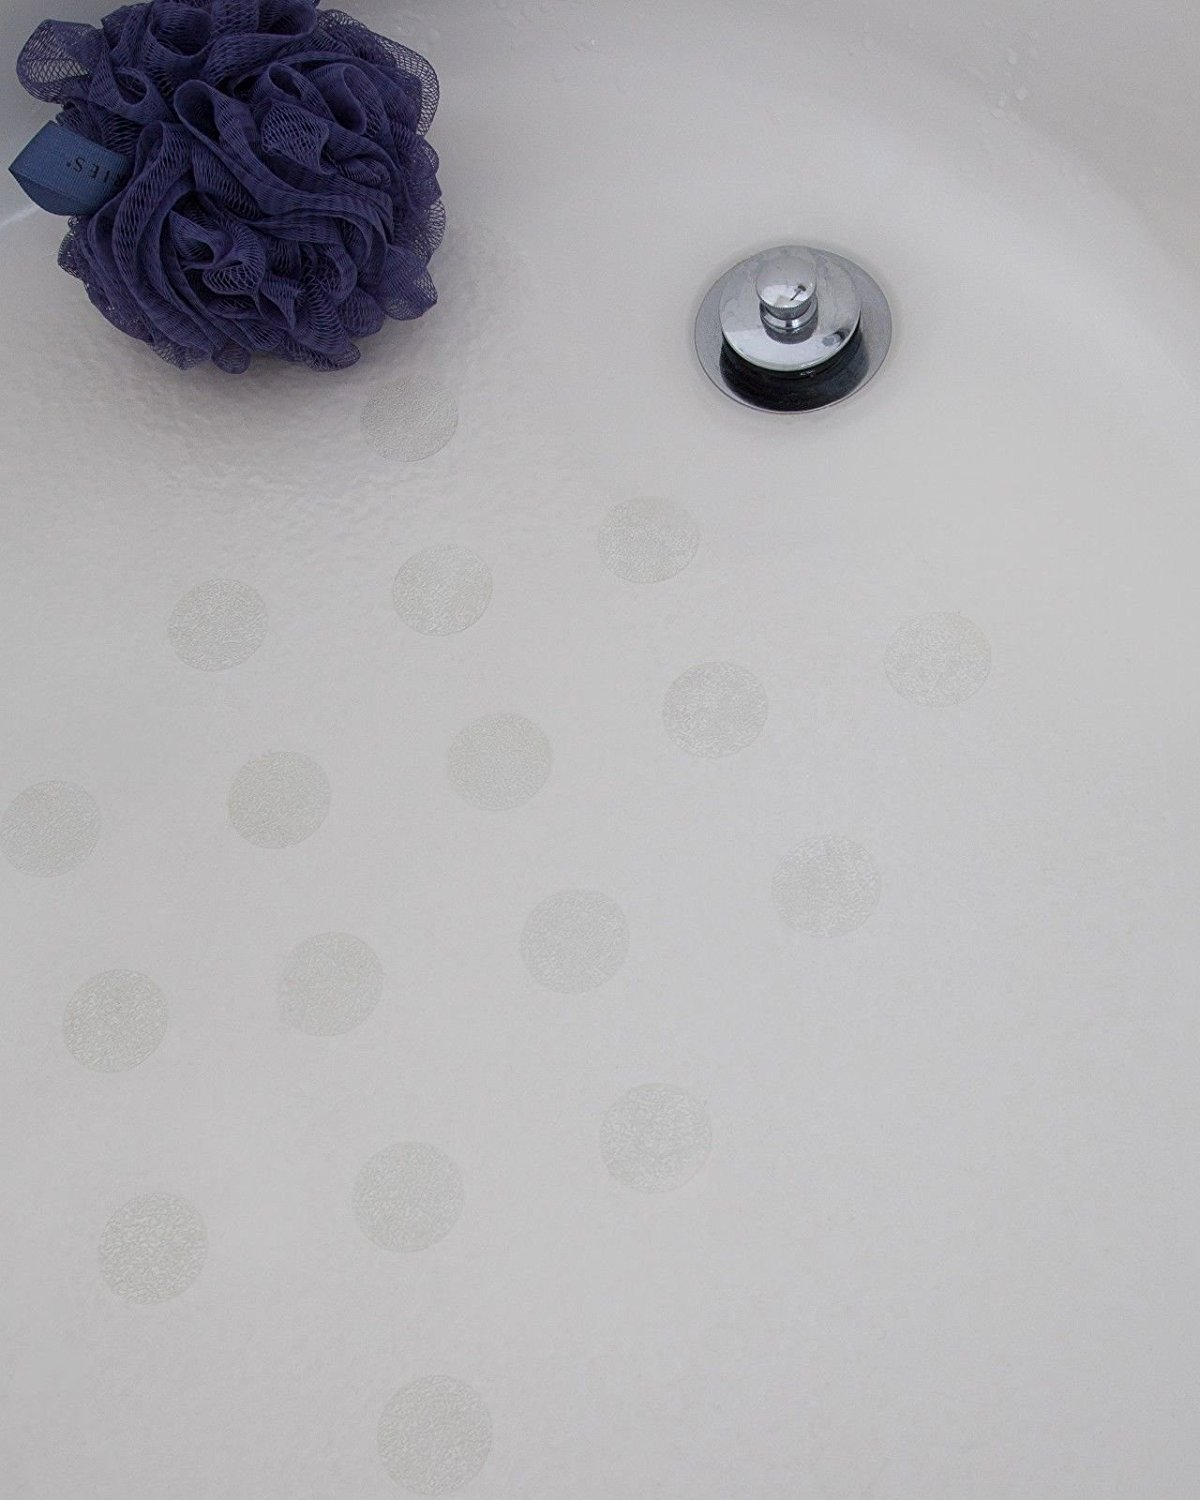 Bath Tub Anti Slip Discs   Non Skid Adhesive Shower Stickers Appliques  Treads (Clear